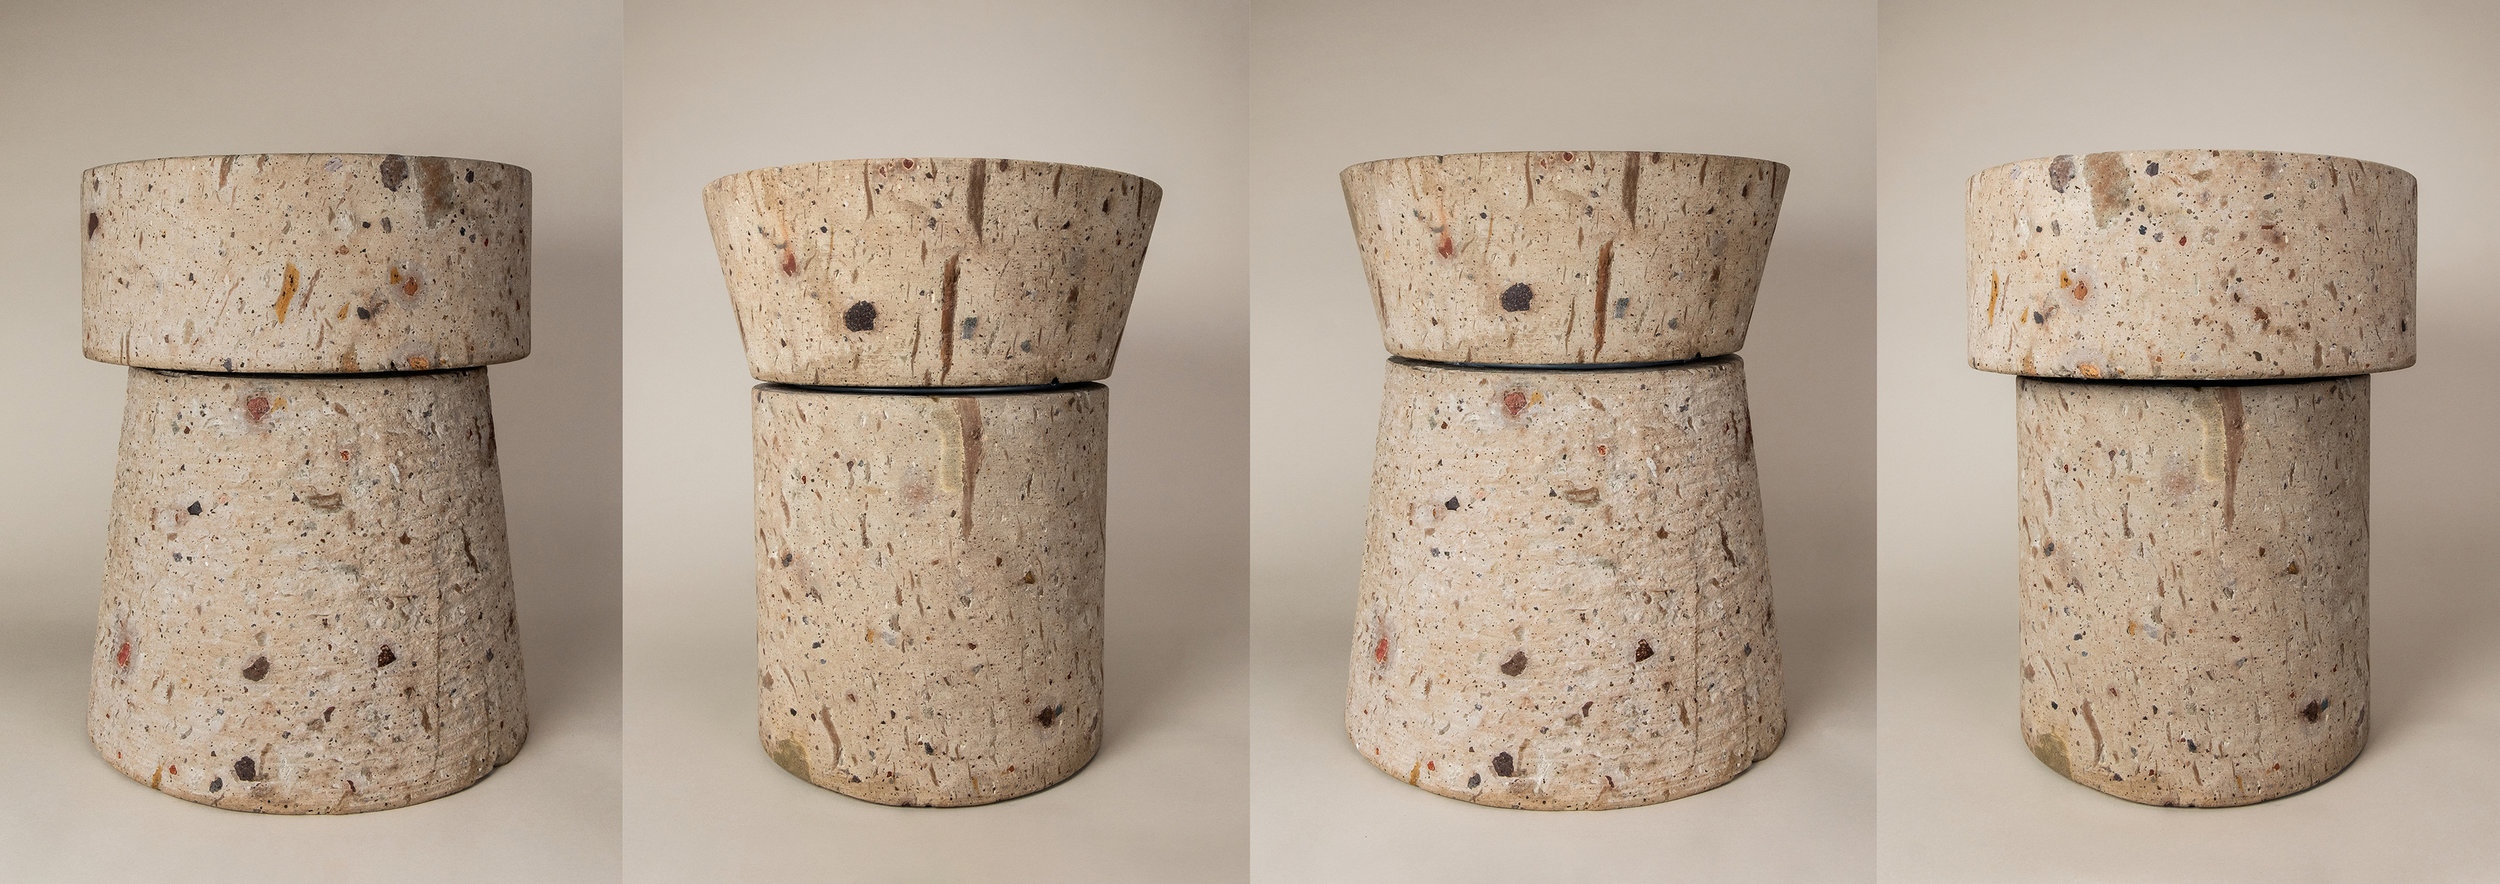 Volcanic Stone Stools - Now Available!